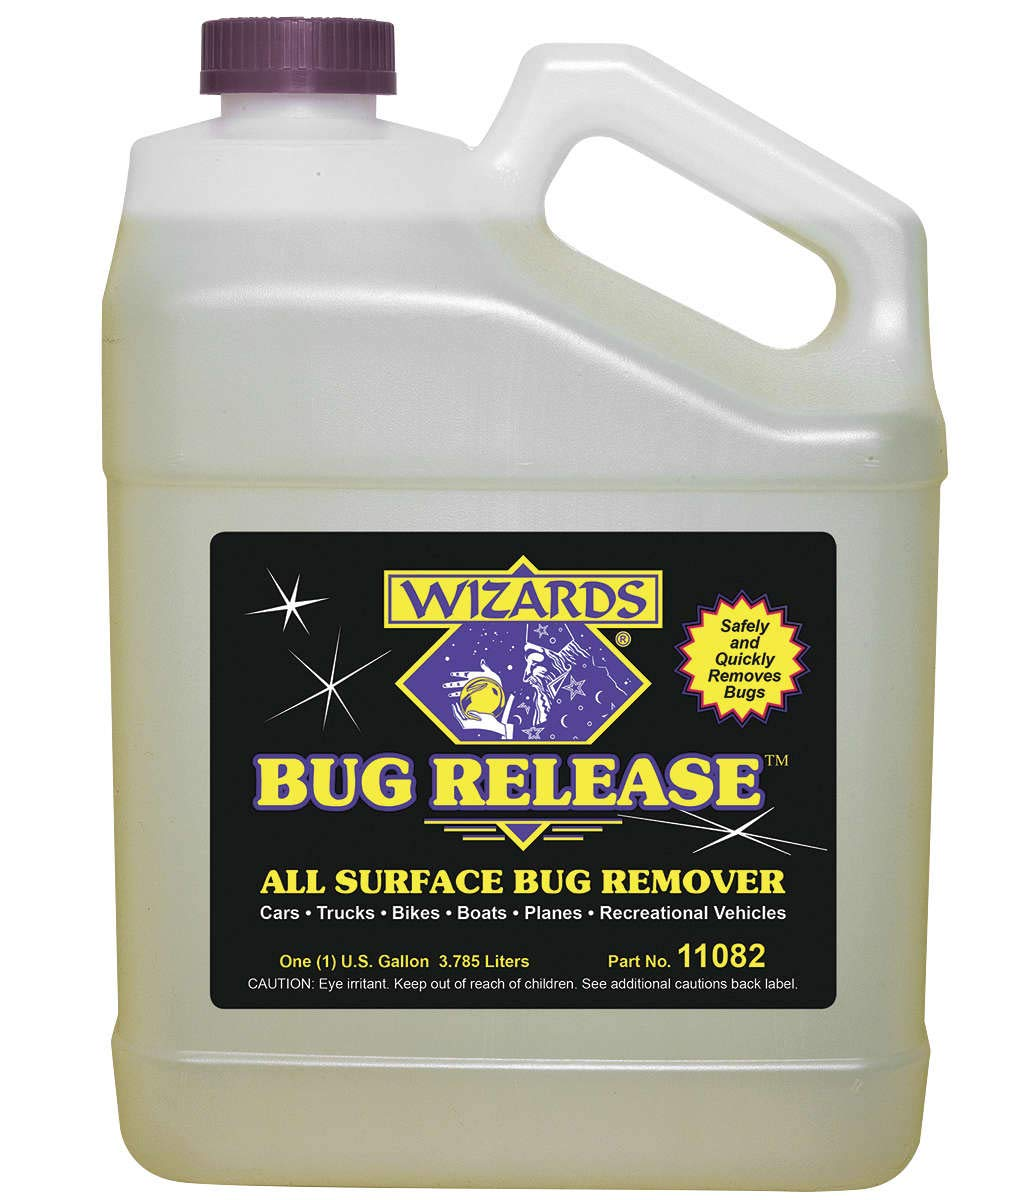 Wizards Bug Release All Surface Bug Remover - Gallon 11082